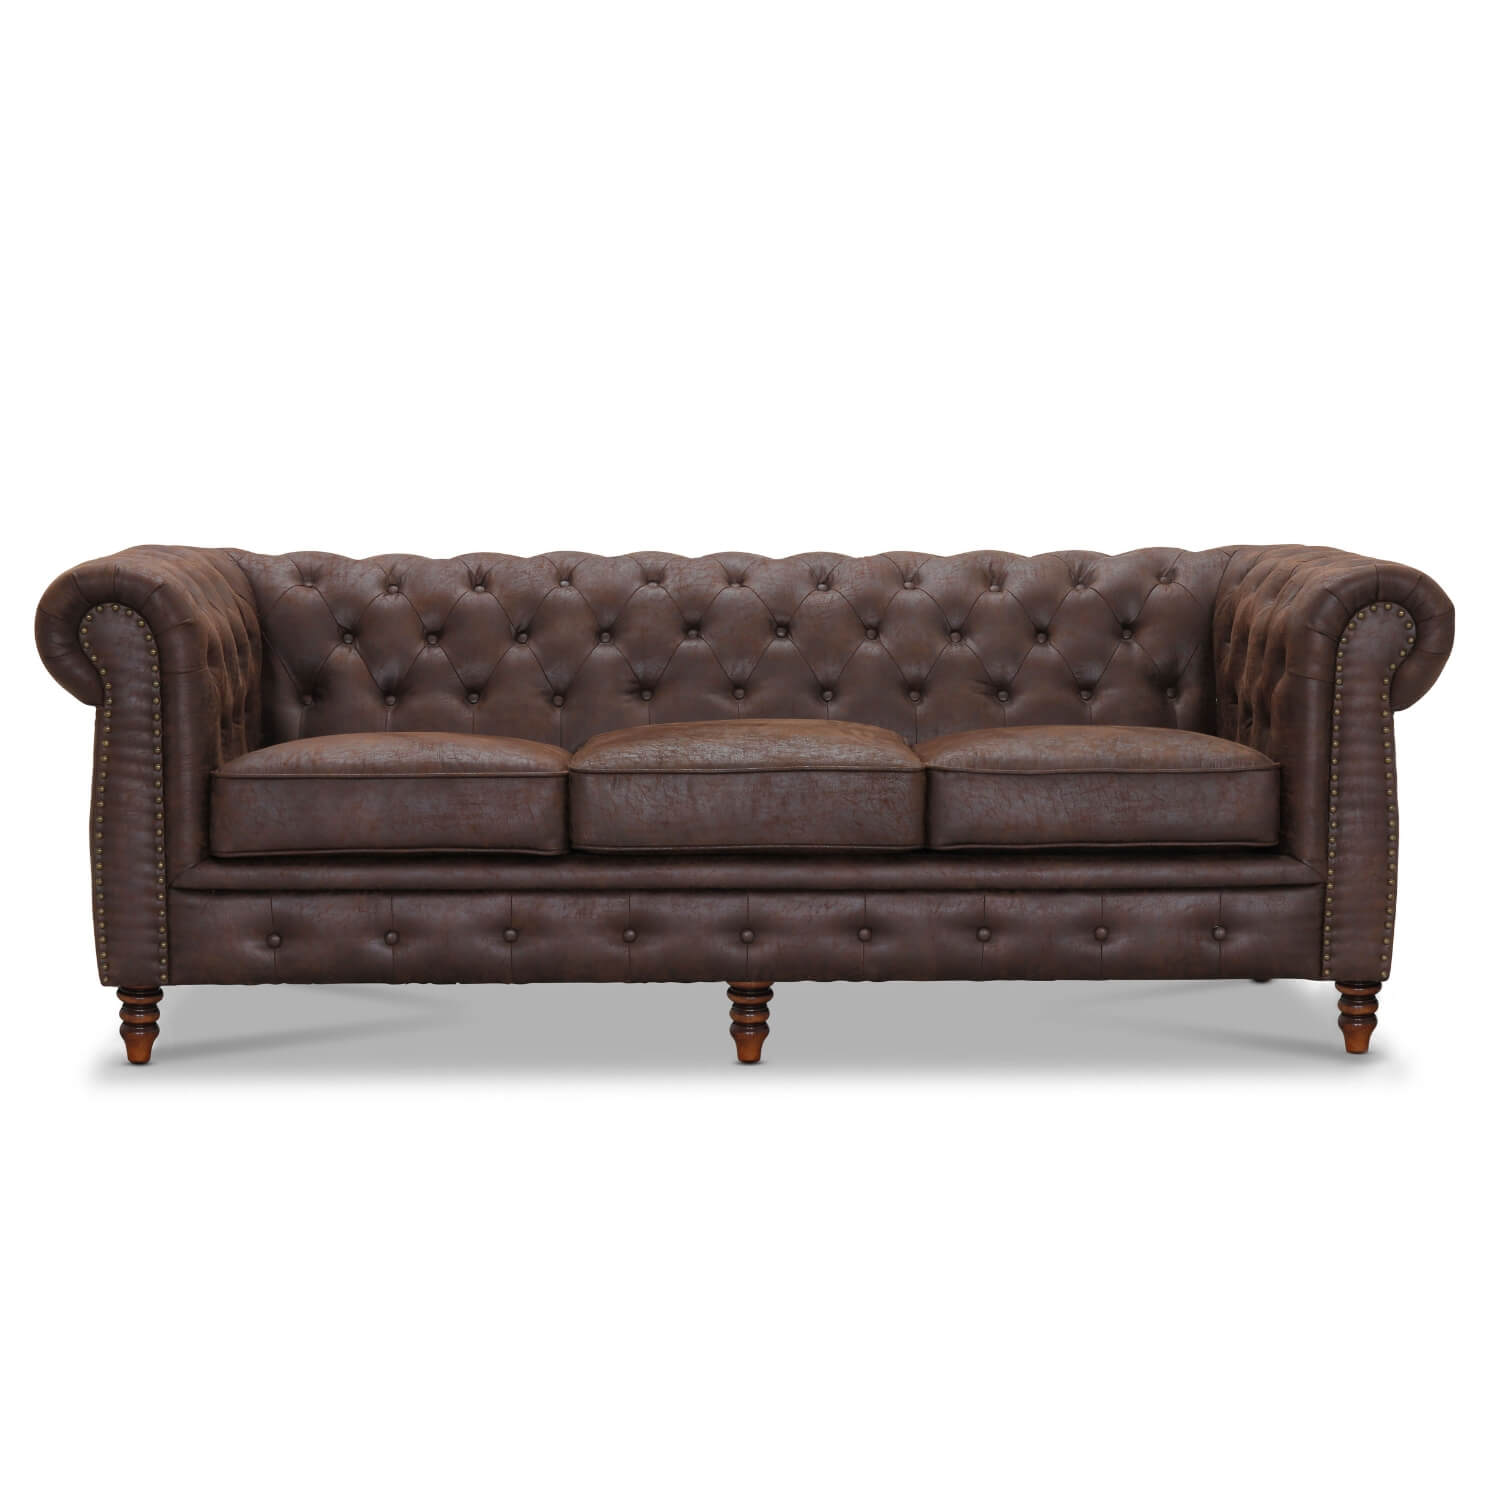 Image of   Cambridge 3 pers. sofa - chesterfield sofa brun